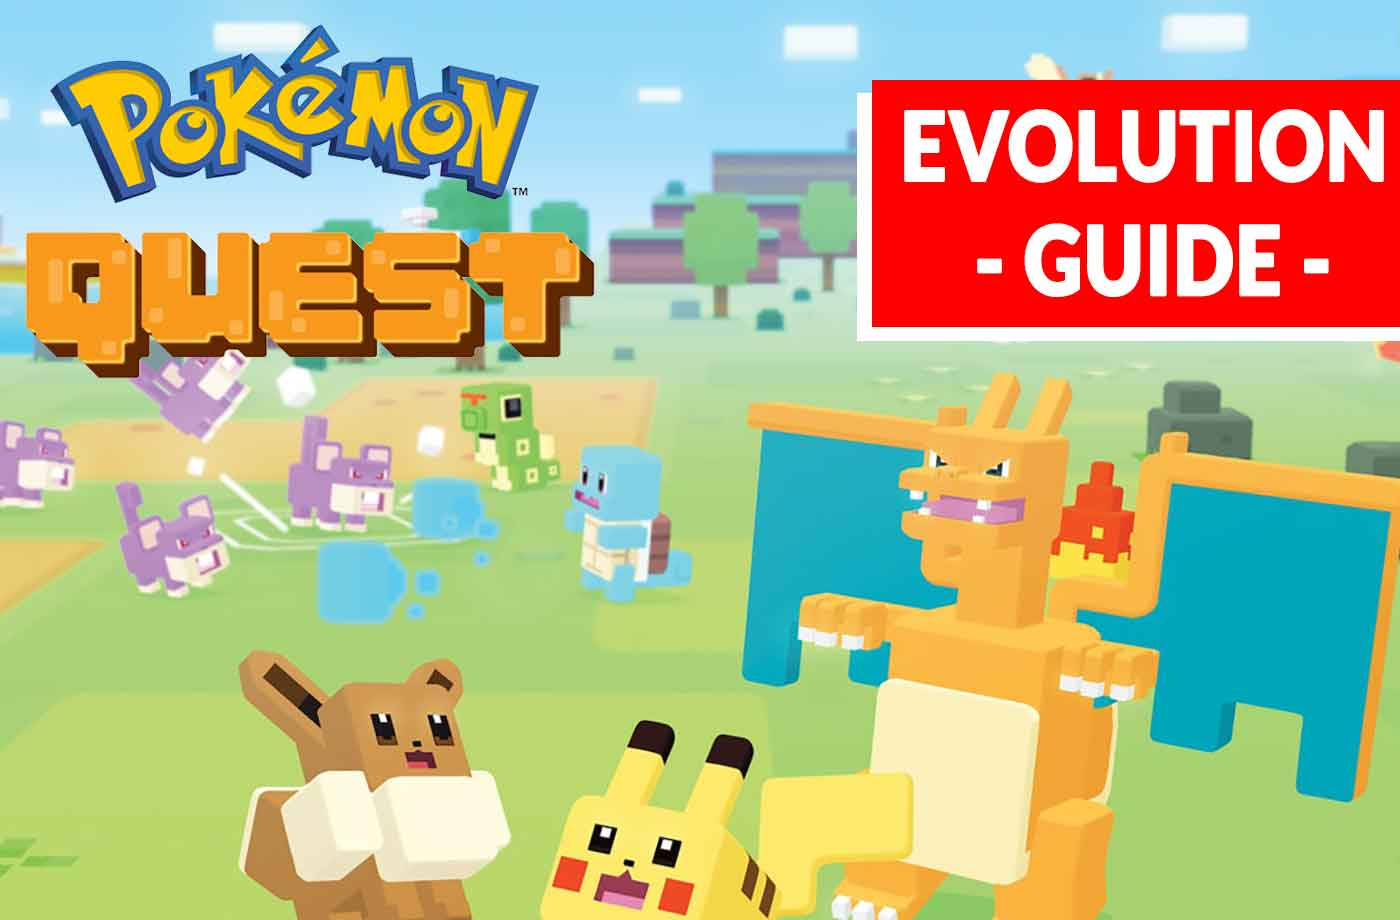 pokemon quest how to evolve your pokemon like pikachu the evolution